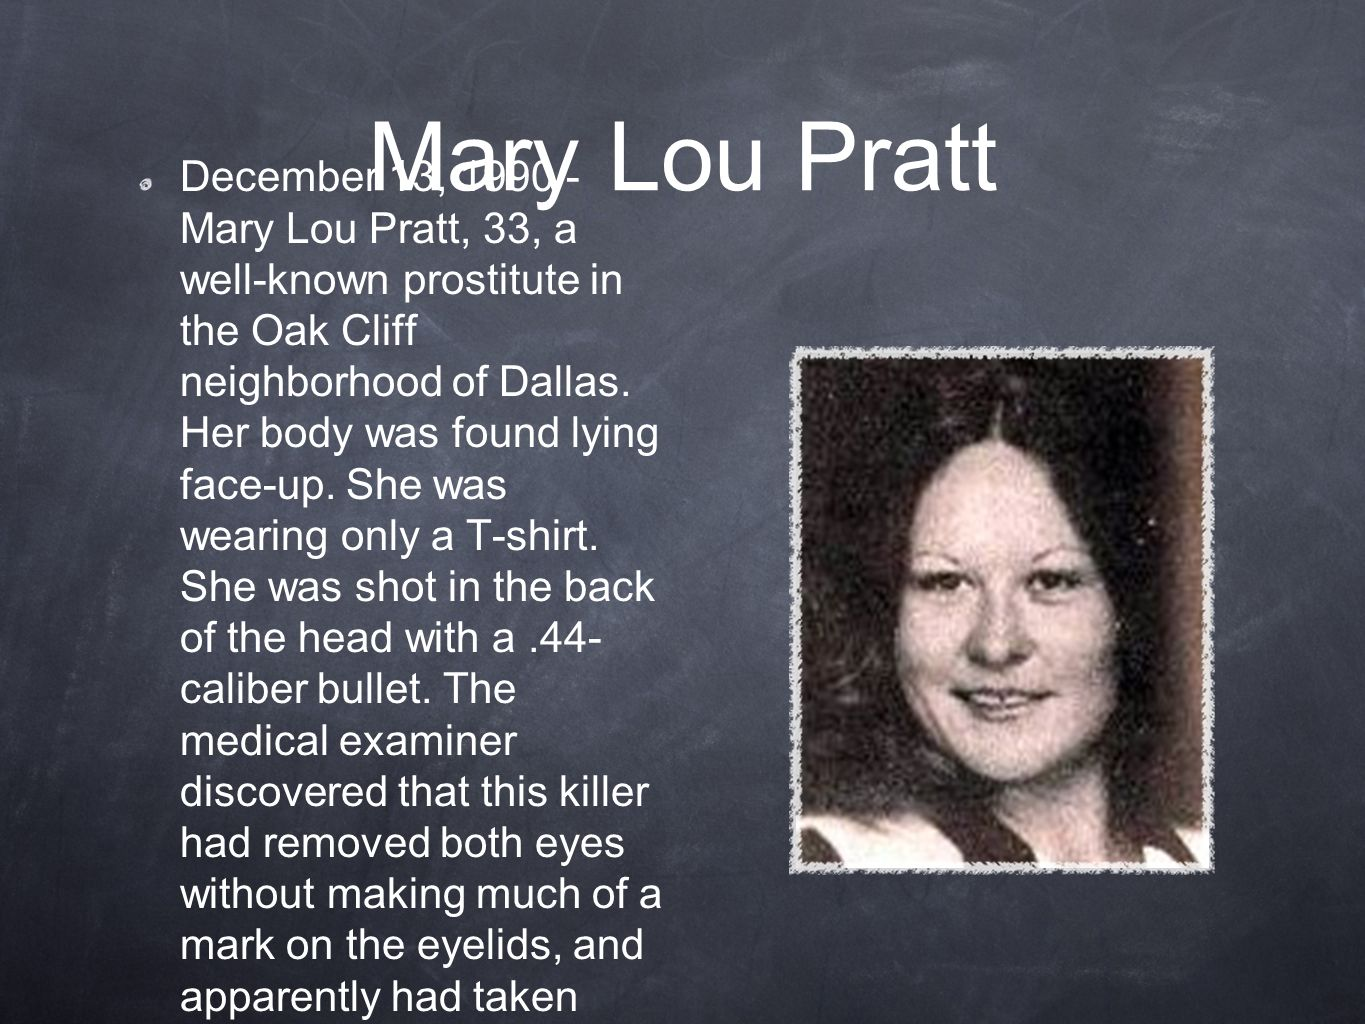 Mary Lou Pratt December 13, 1990 - Mary Lou Pratt, 33, a well-known prostitute in the Oak Cliff neighborhood of Dallas. Her body was found lying face-